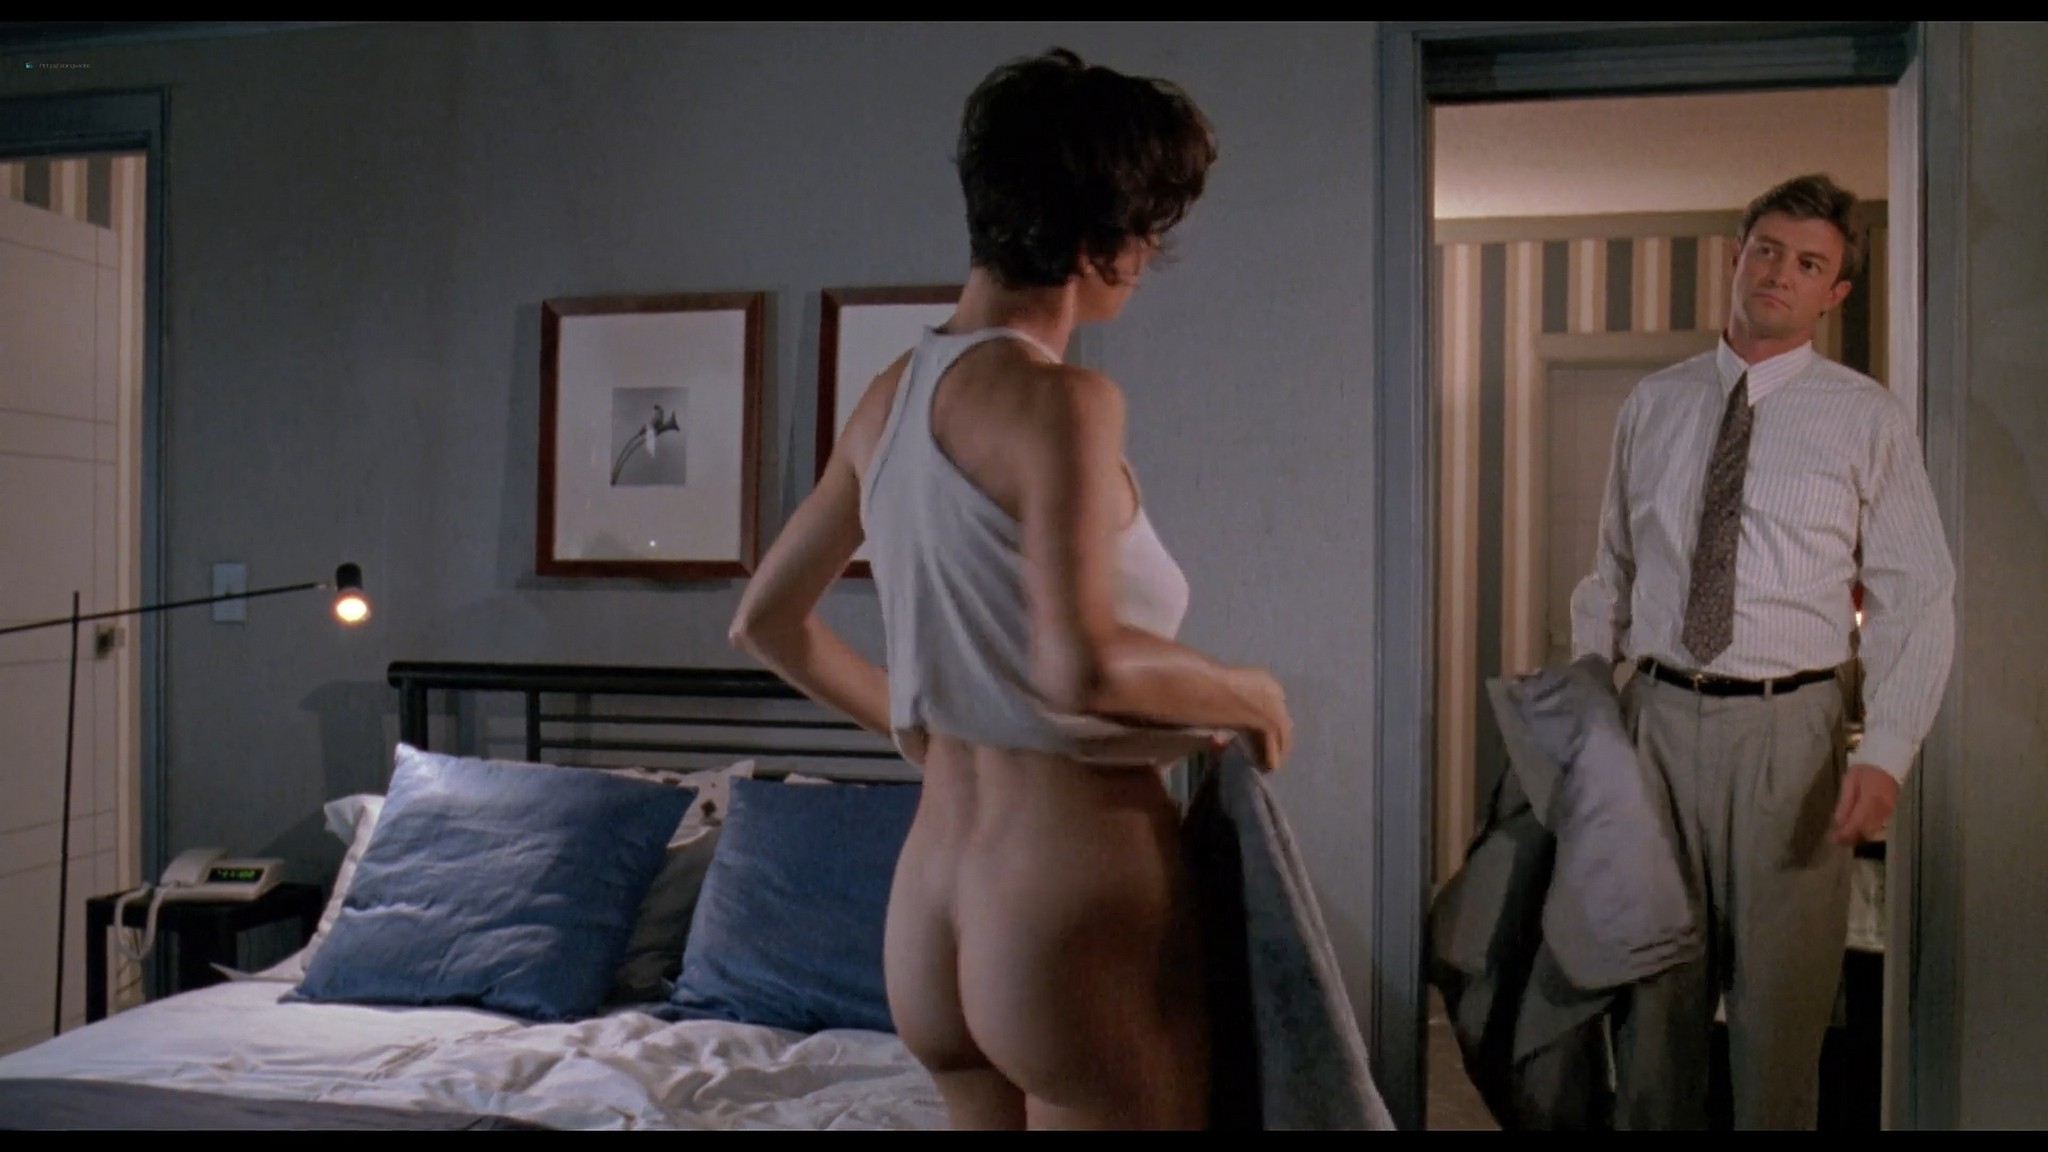 Sean Young nude full frontal Fern Dorsey and others nude Love Crimes 1992 1080p Web 4